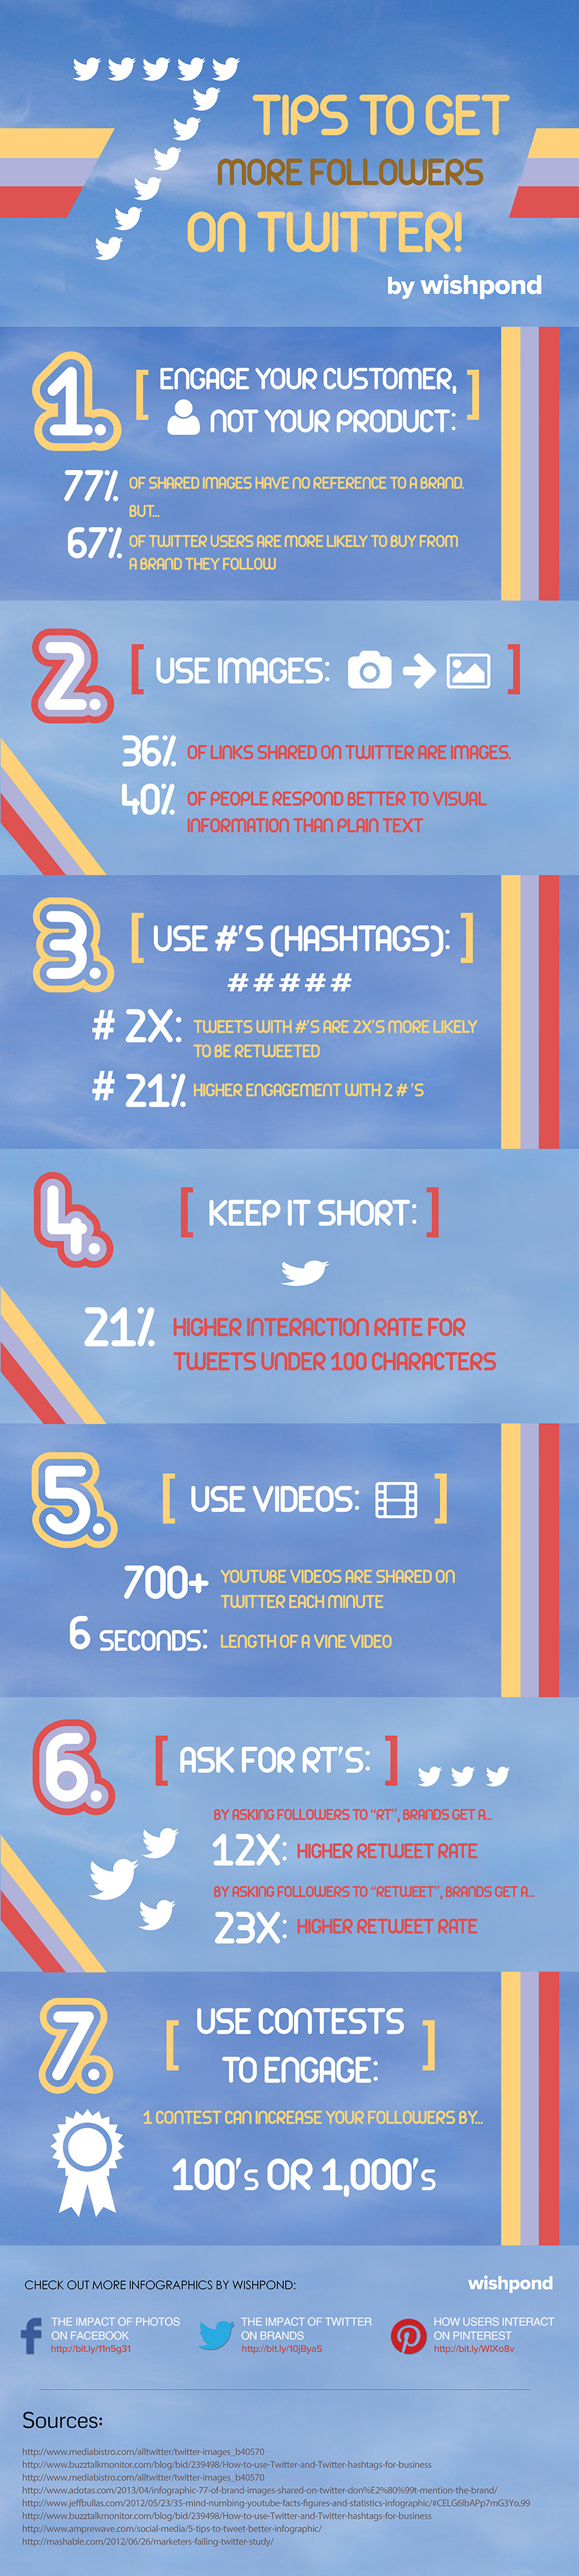 7 tips to get more followers on Twitter infographic